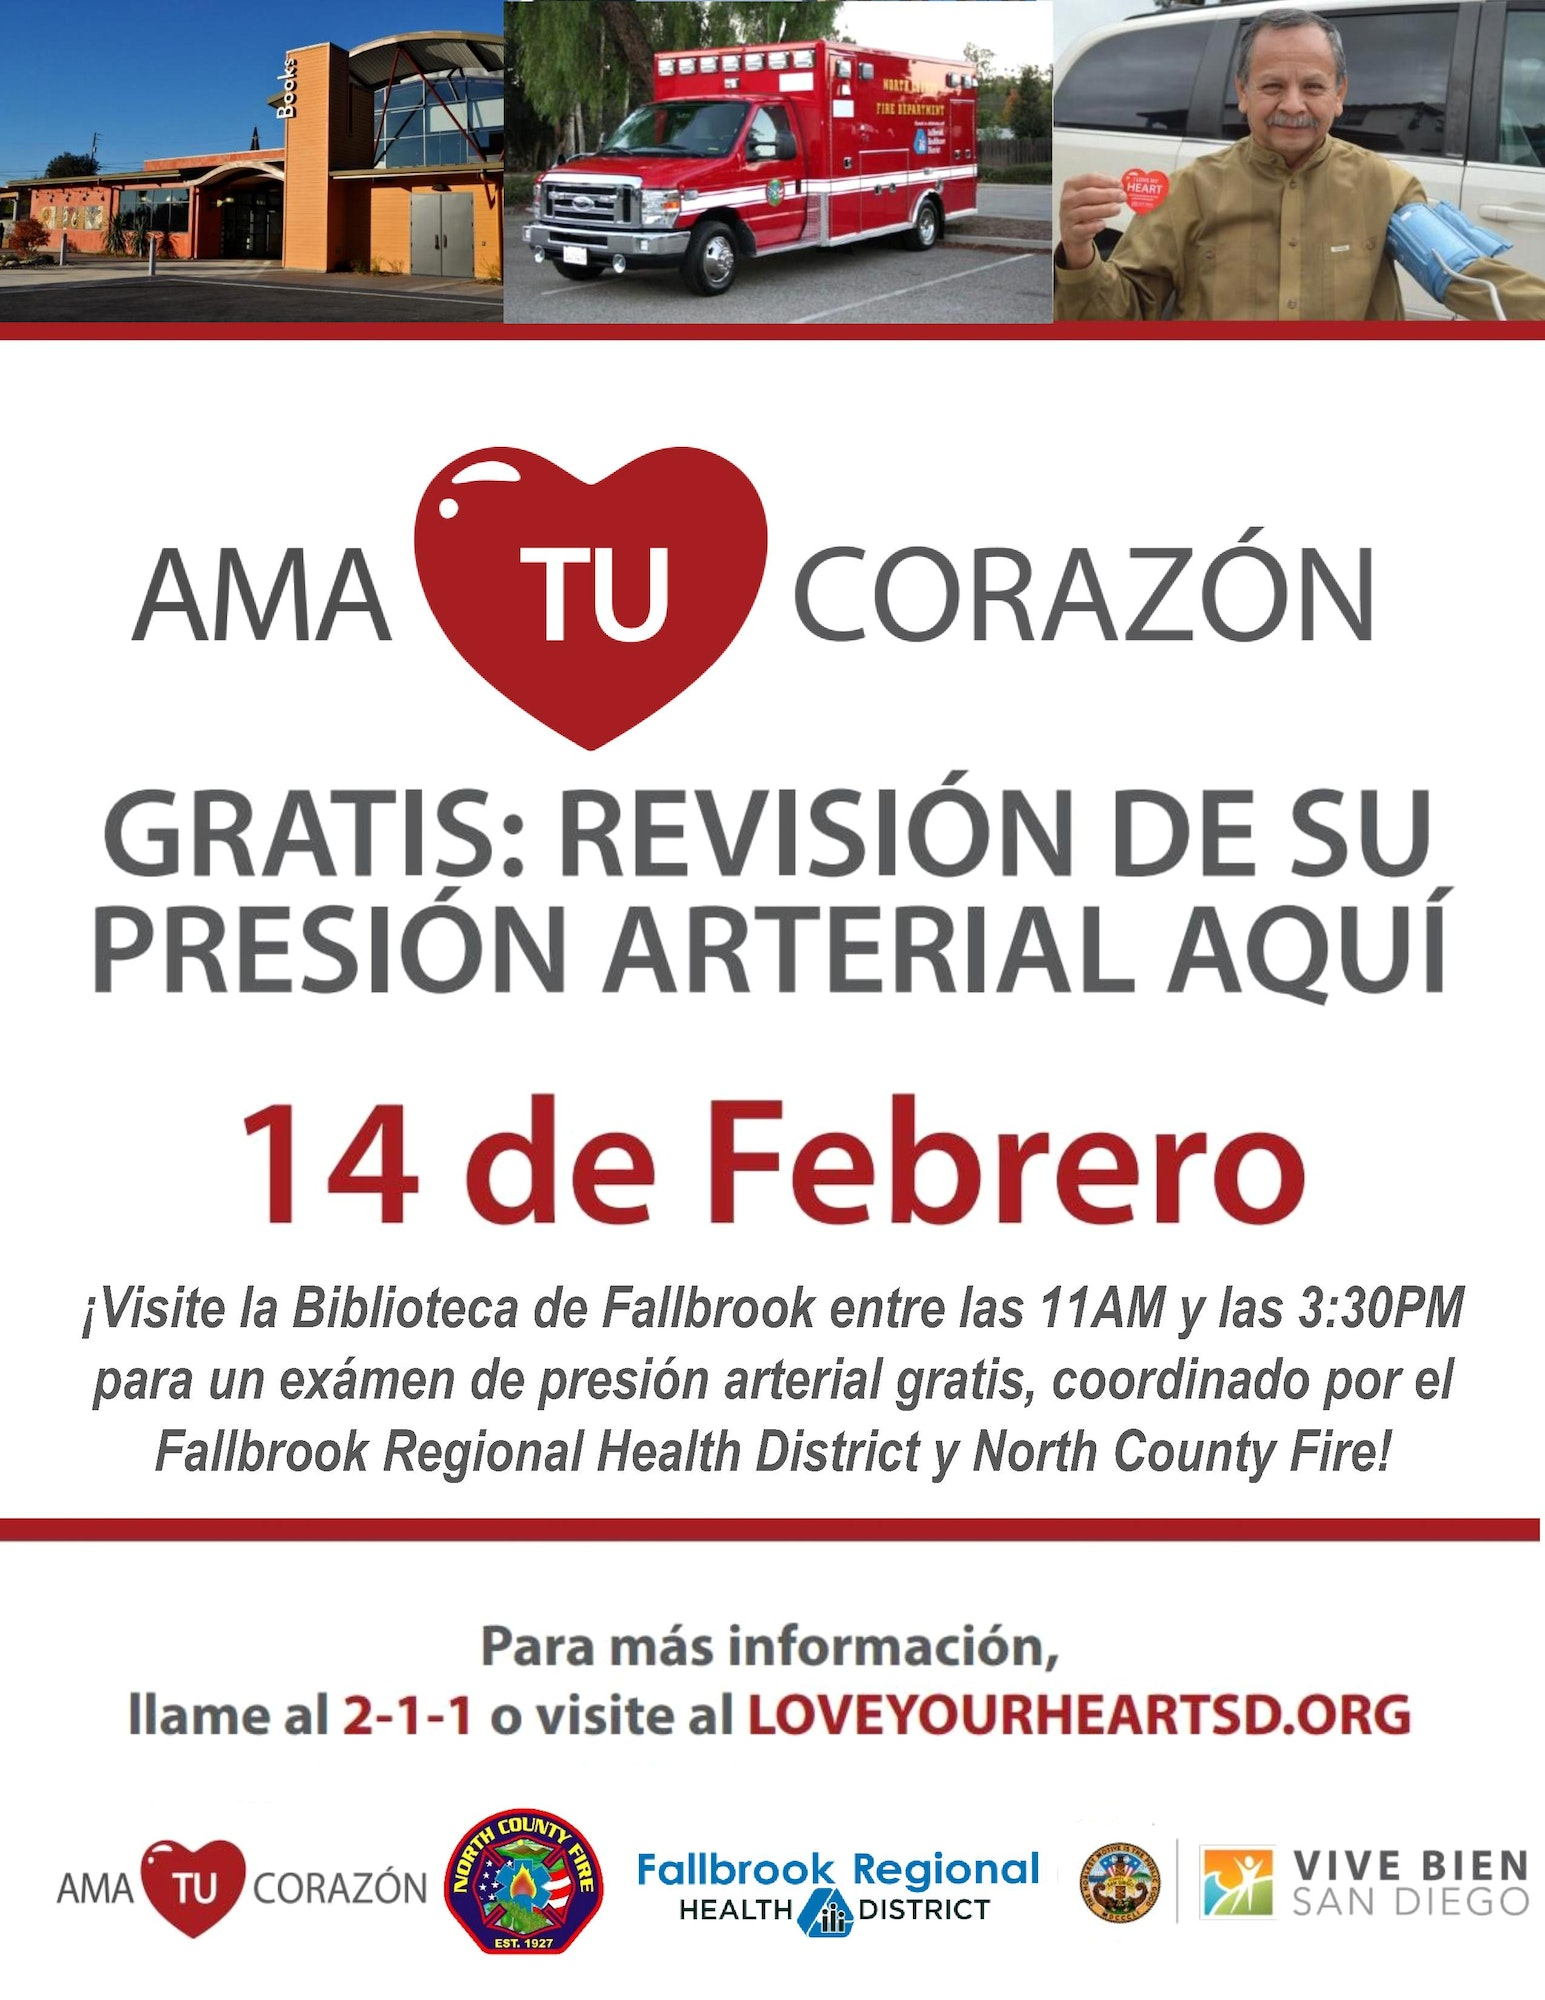 bolante del ama tu corazon evento. fallbrook regional health district y North County Fire ofreceran examenes de presión arterial gratis  el viernes 14 de febrero 11am-3:30pm